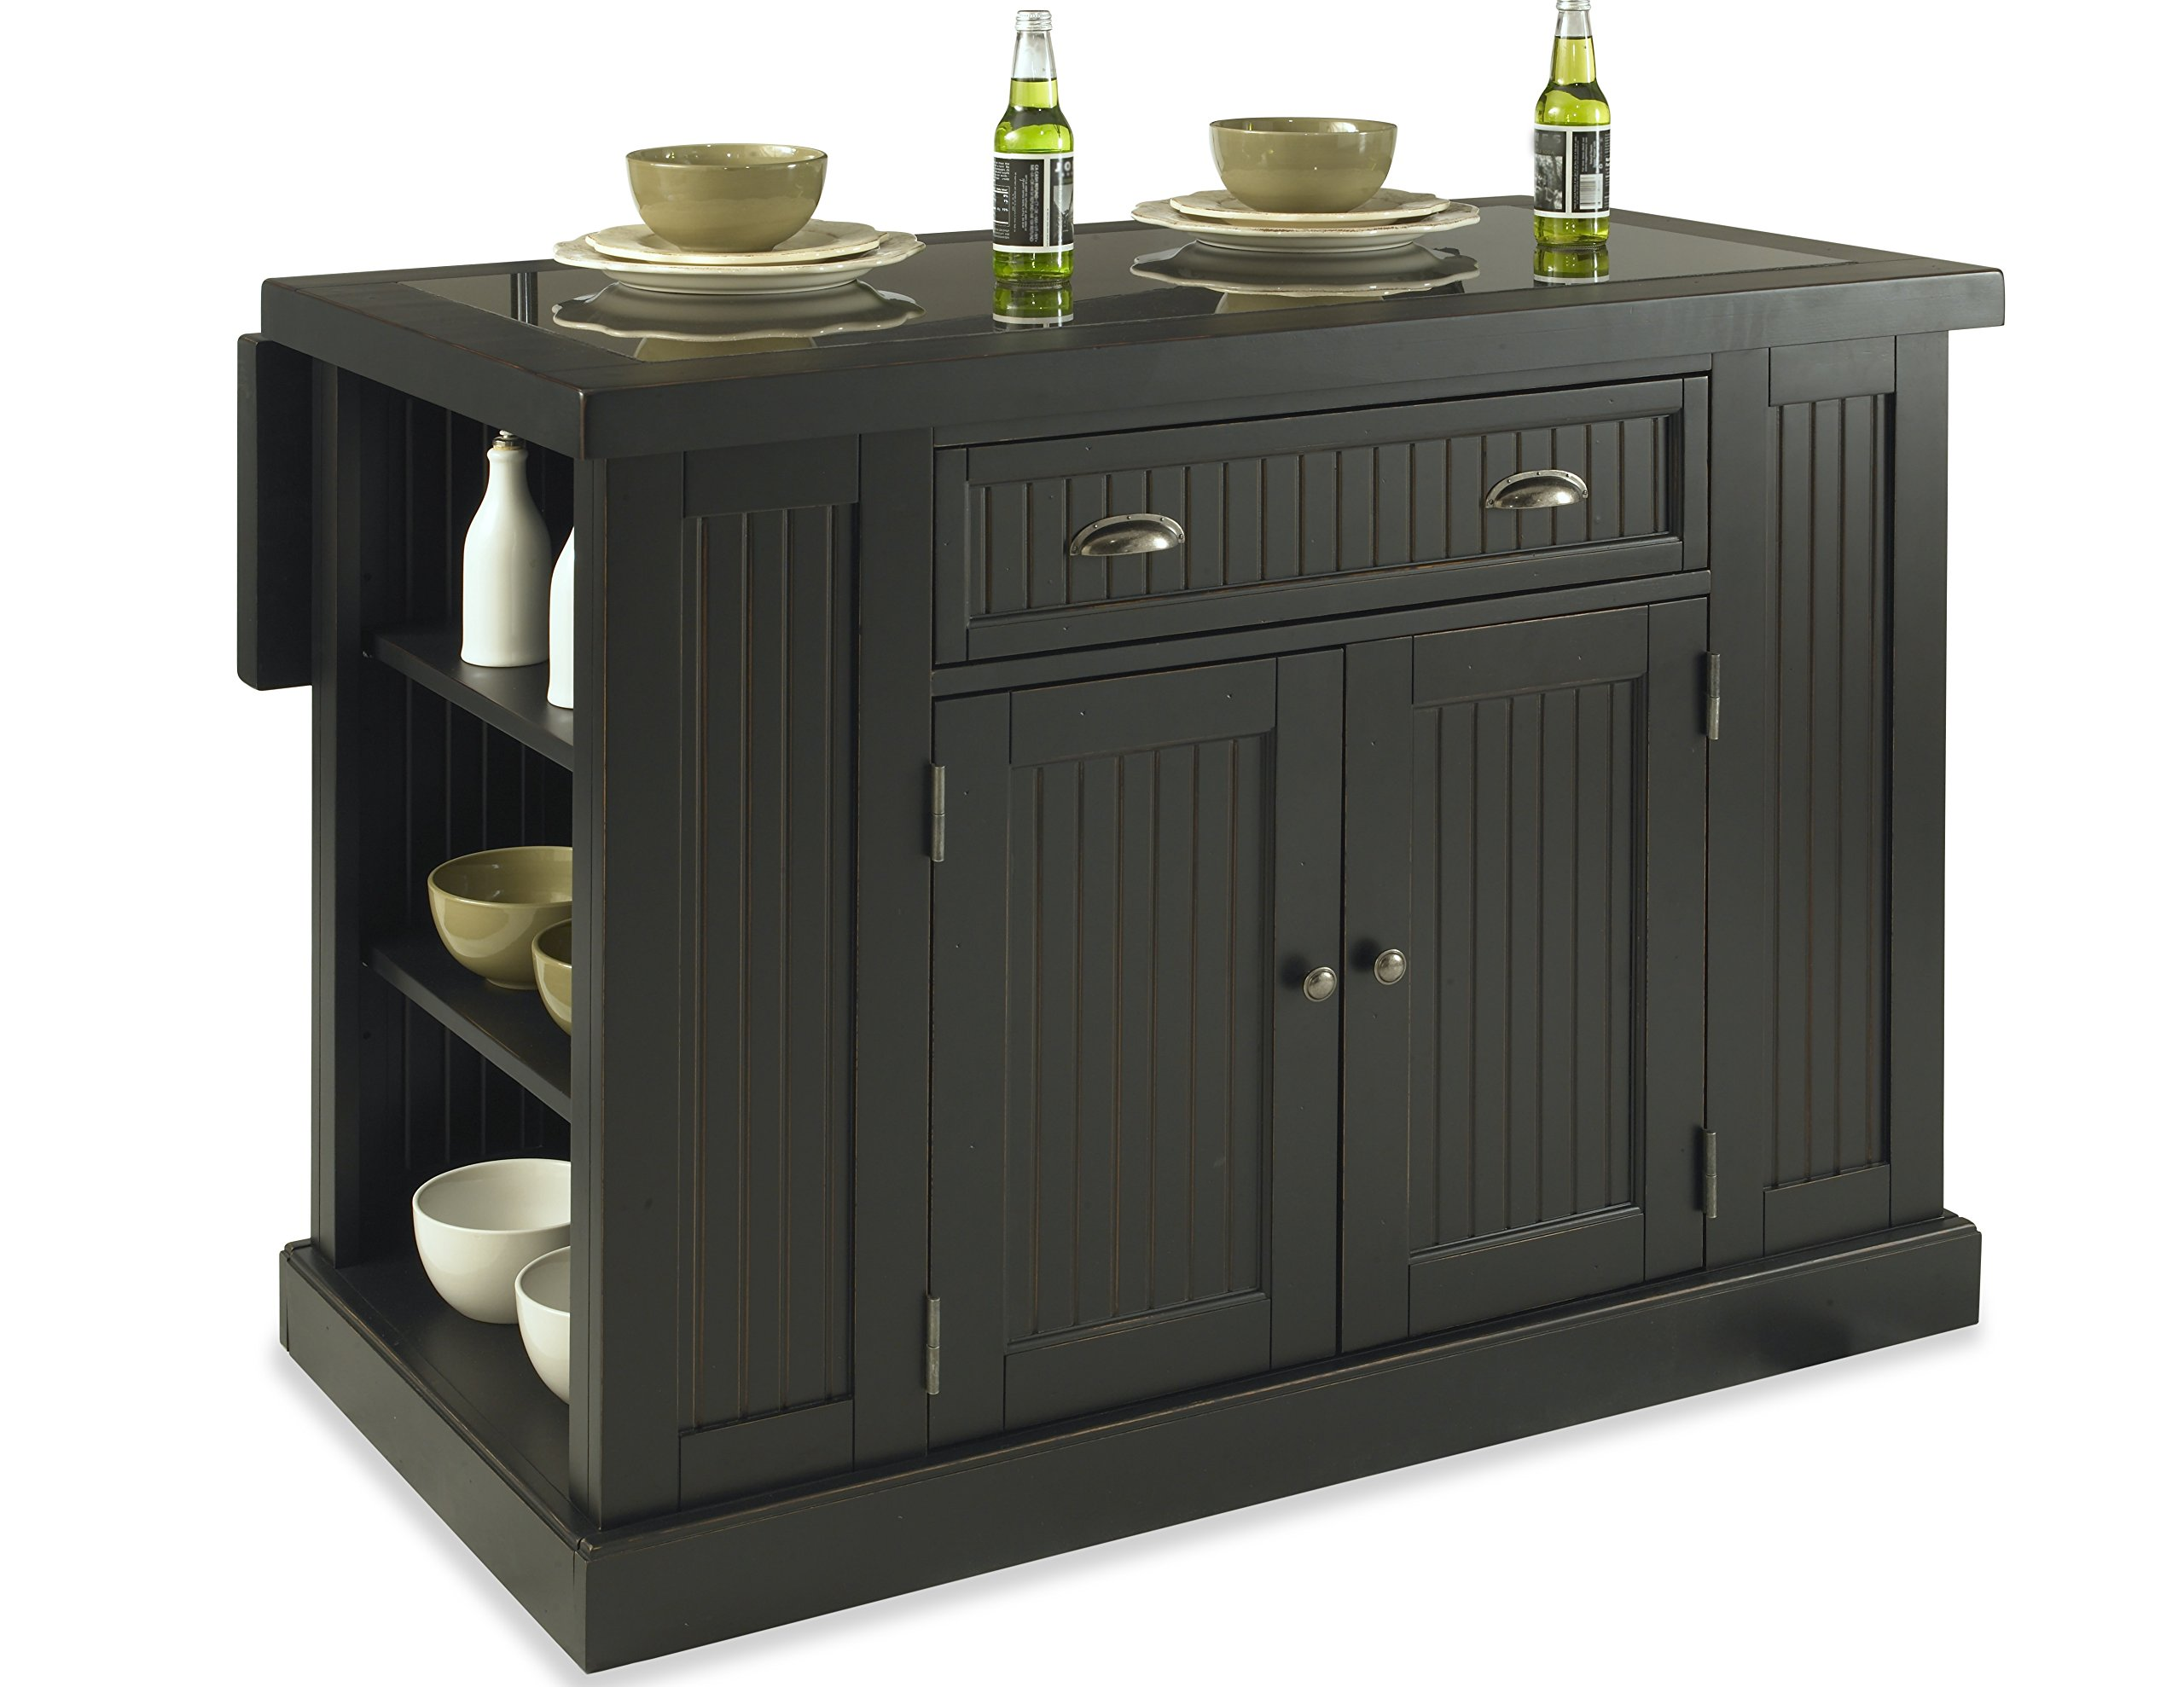 Home Styles  Nantucket Kitchen Island, Distressed Black Finish